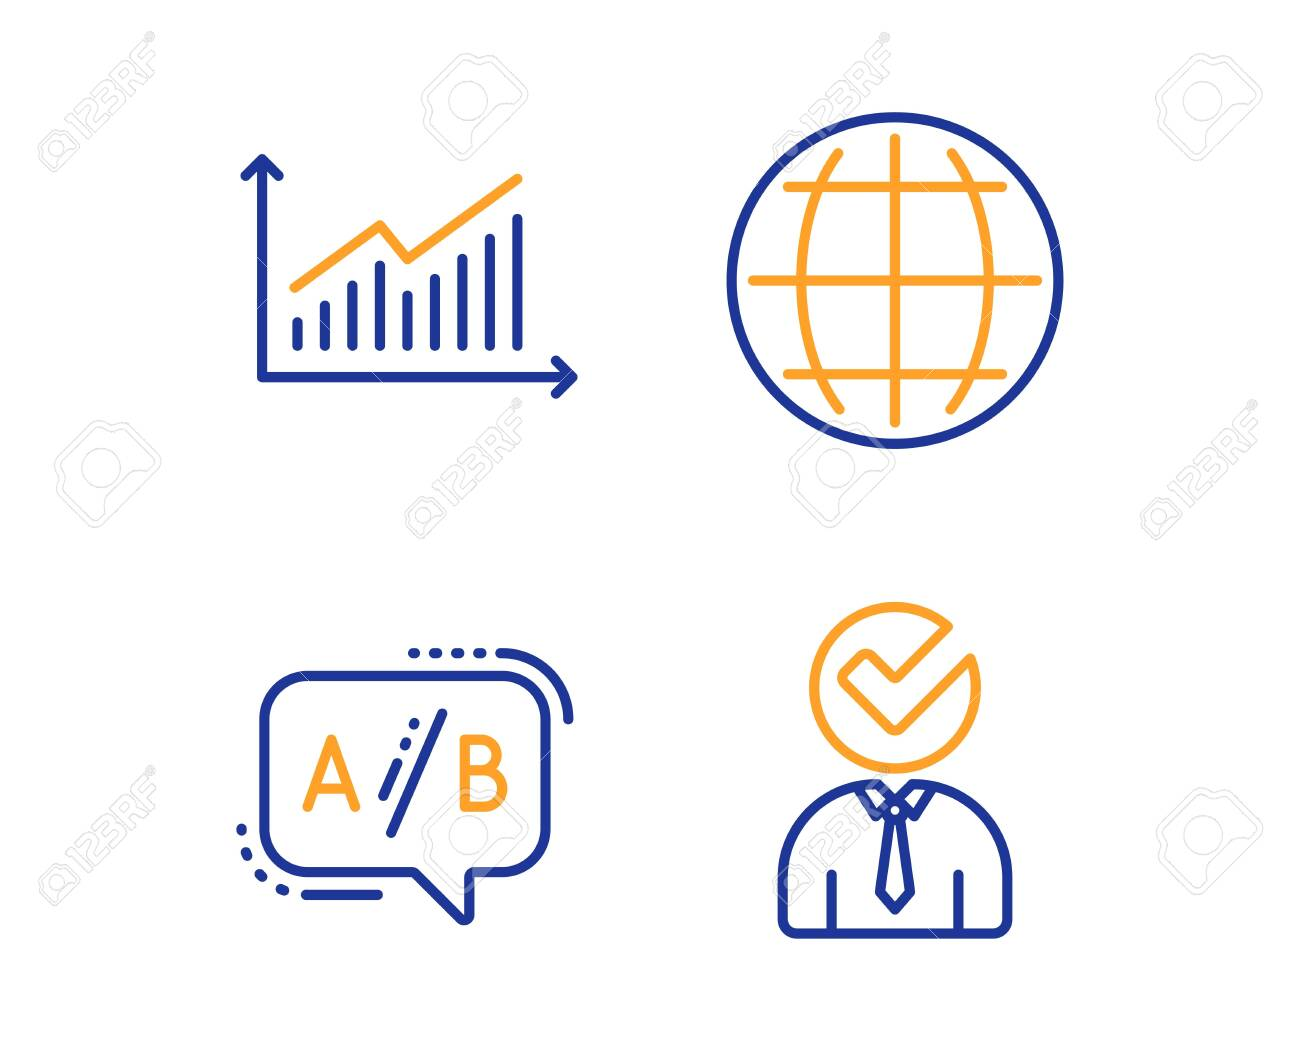 hight resolution of graph ab testing and globe icons simple set vacancy sign presentation diagram